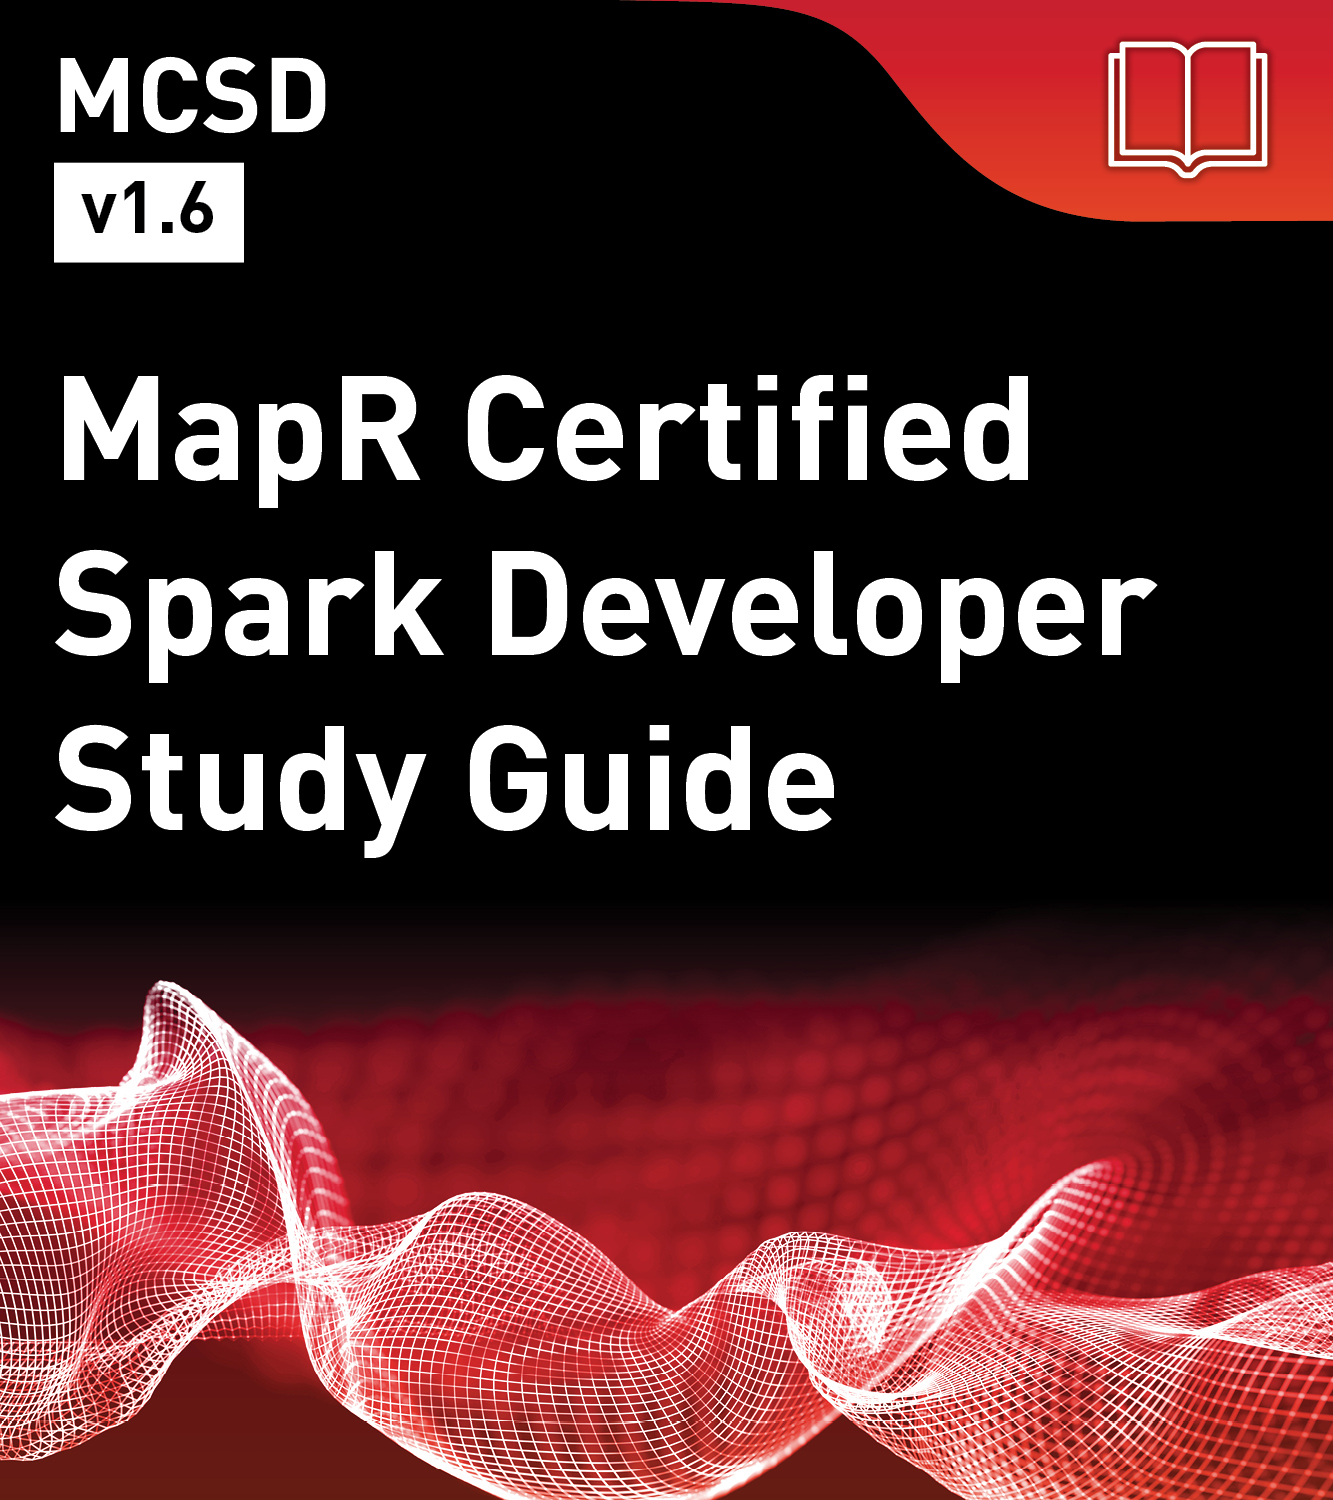 MCSD Study Guide - MapR Certified Spark Developer (v1.6)